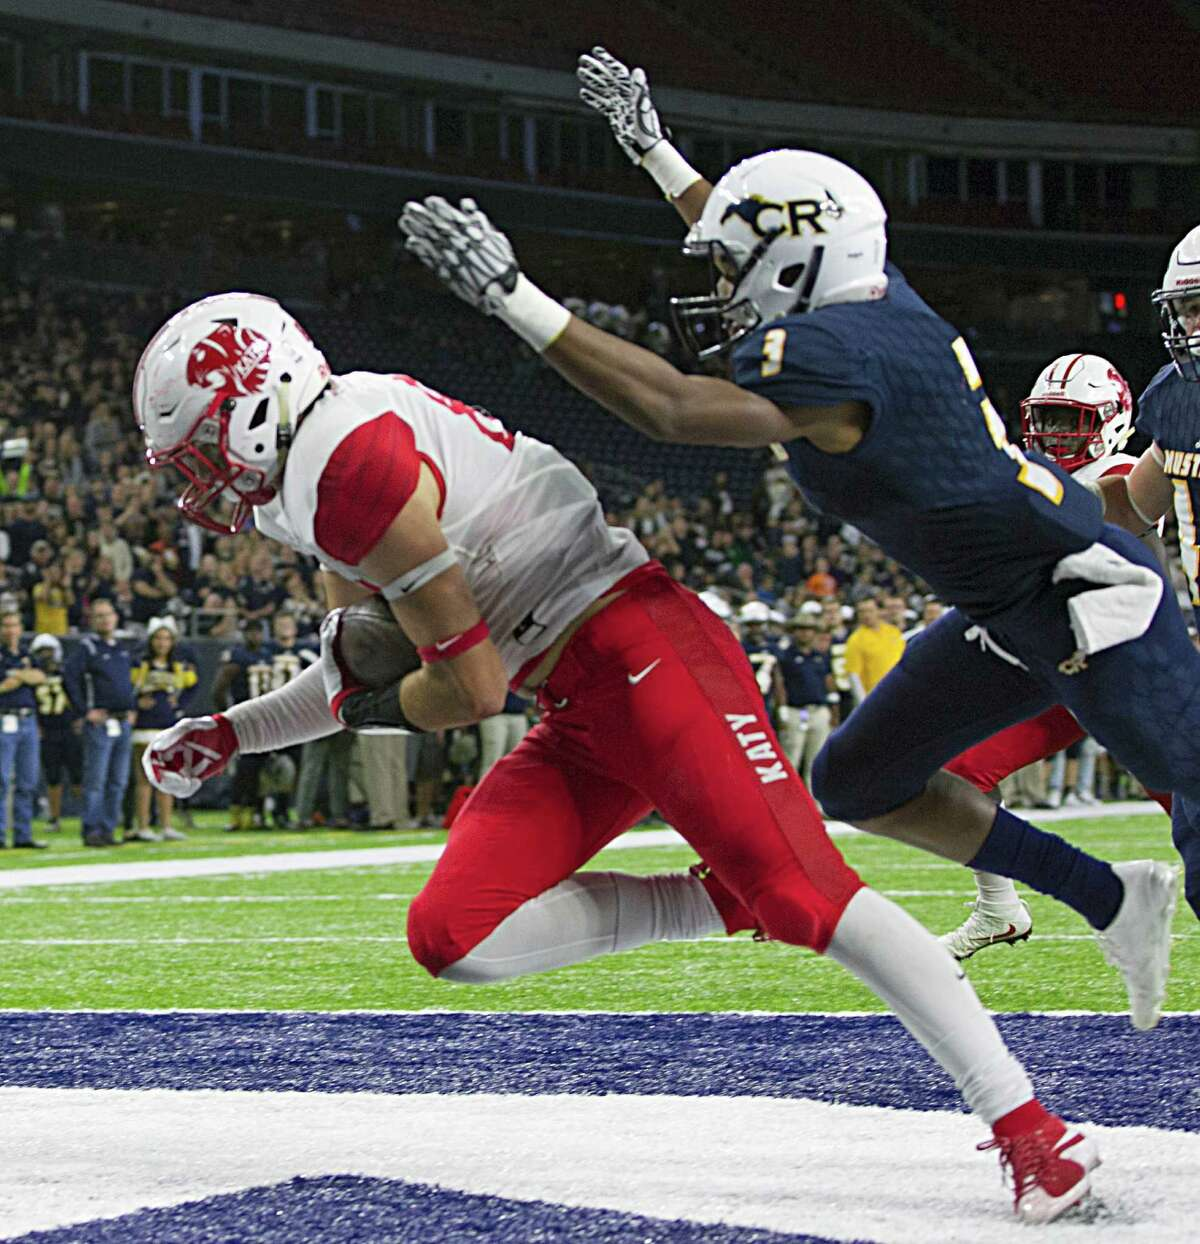 Katy's Parker Eichenberger left, scores a touchdown against Cypress Ranch's Shemar Barthlomew during the first half of the Class 6A Division I playoffs Friday at NRG Stadium.